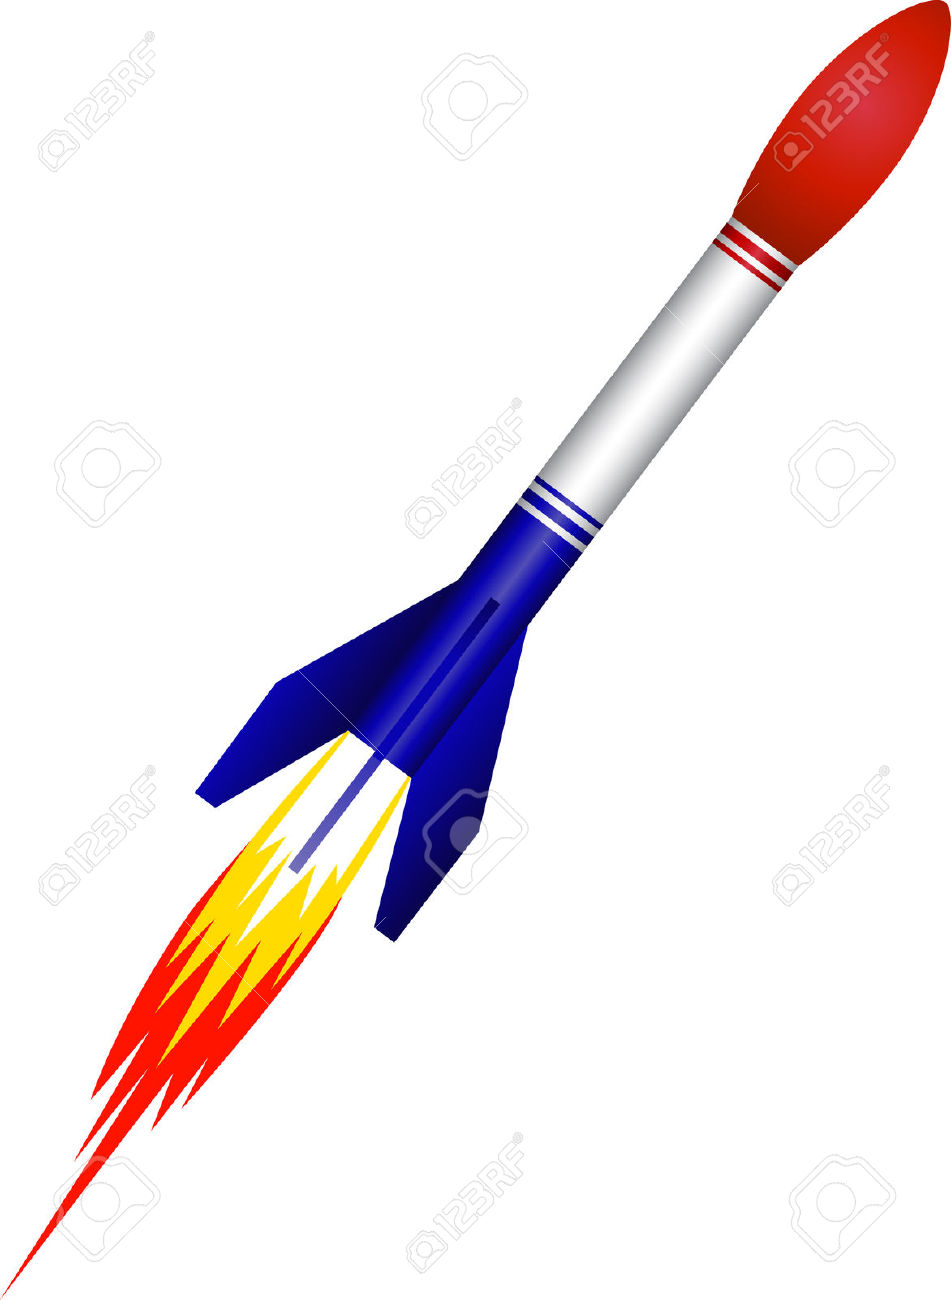 missile launch clipart clipground cougar clip art free cougar clipart for schools